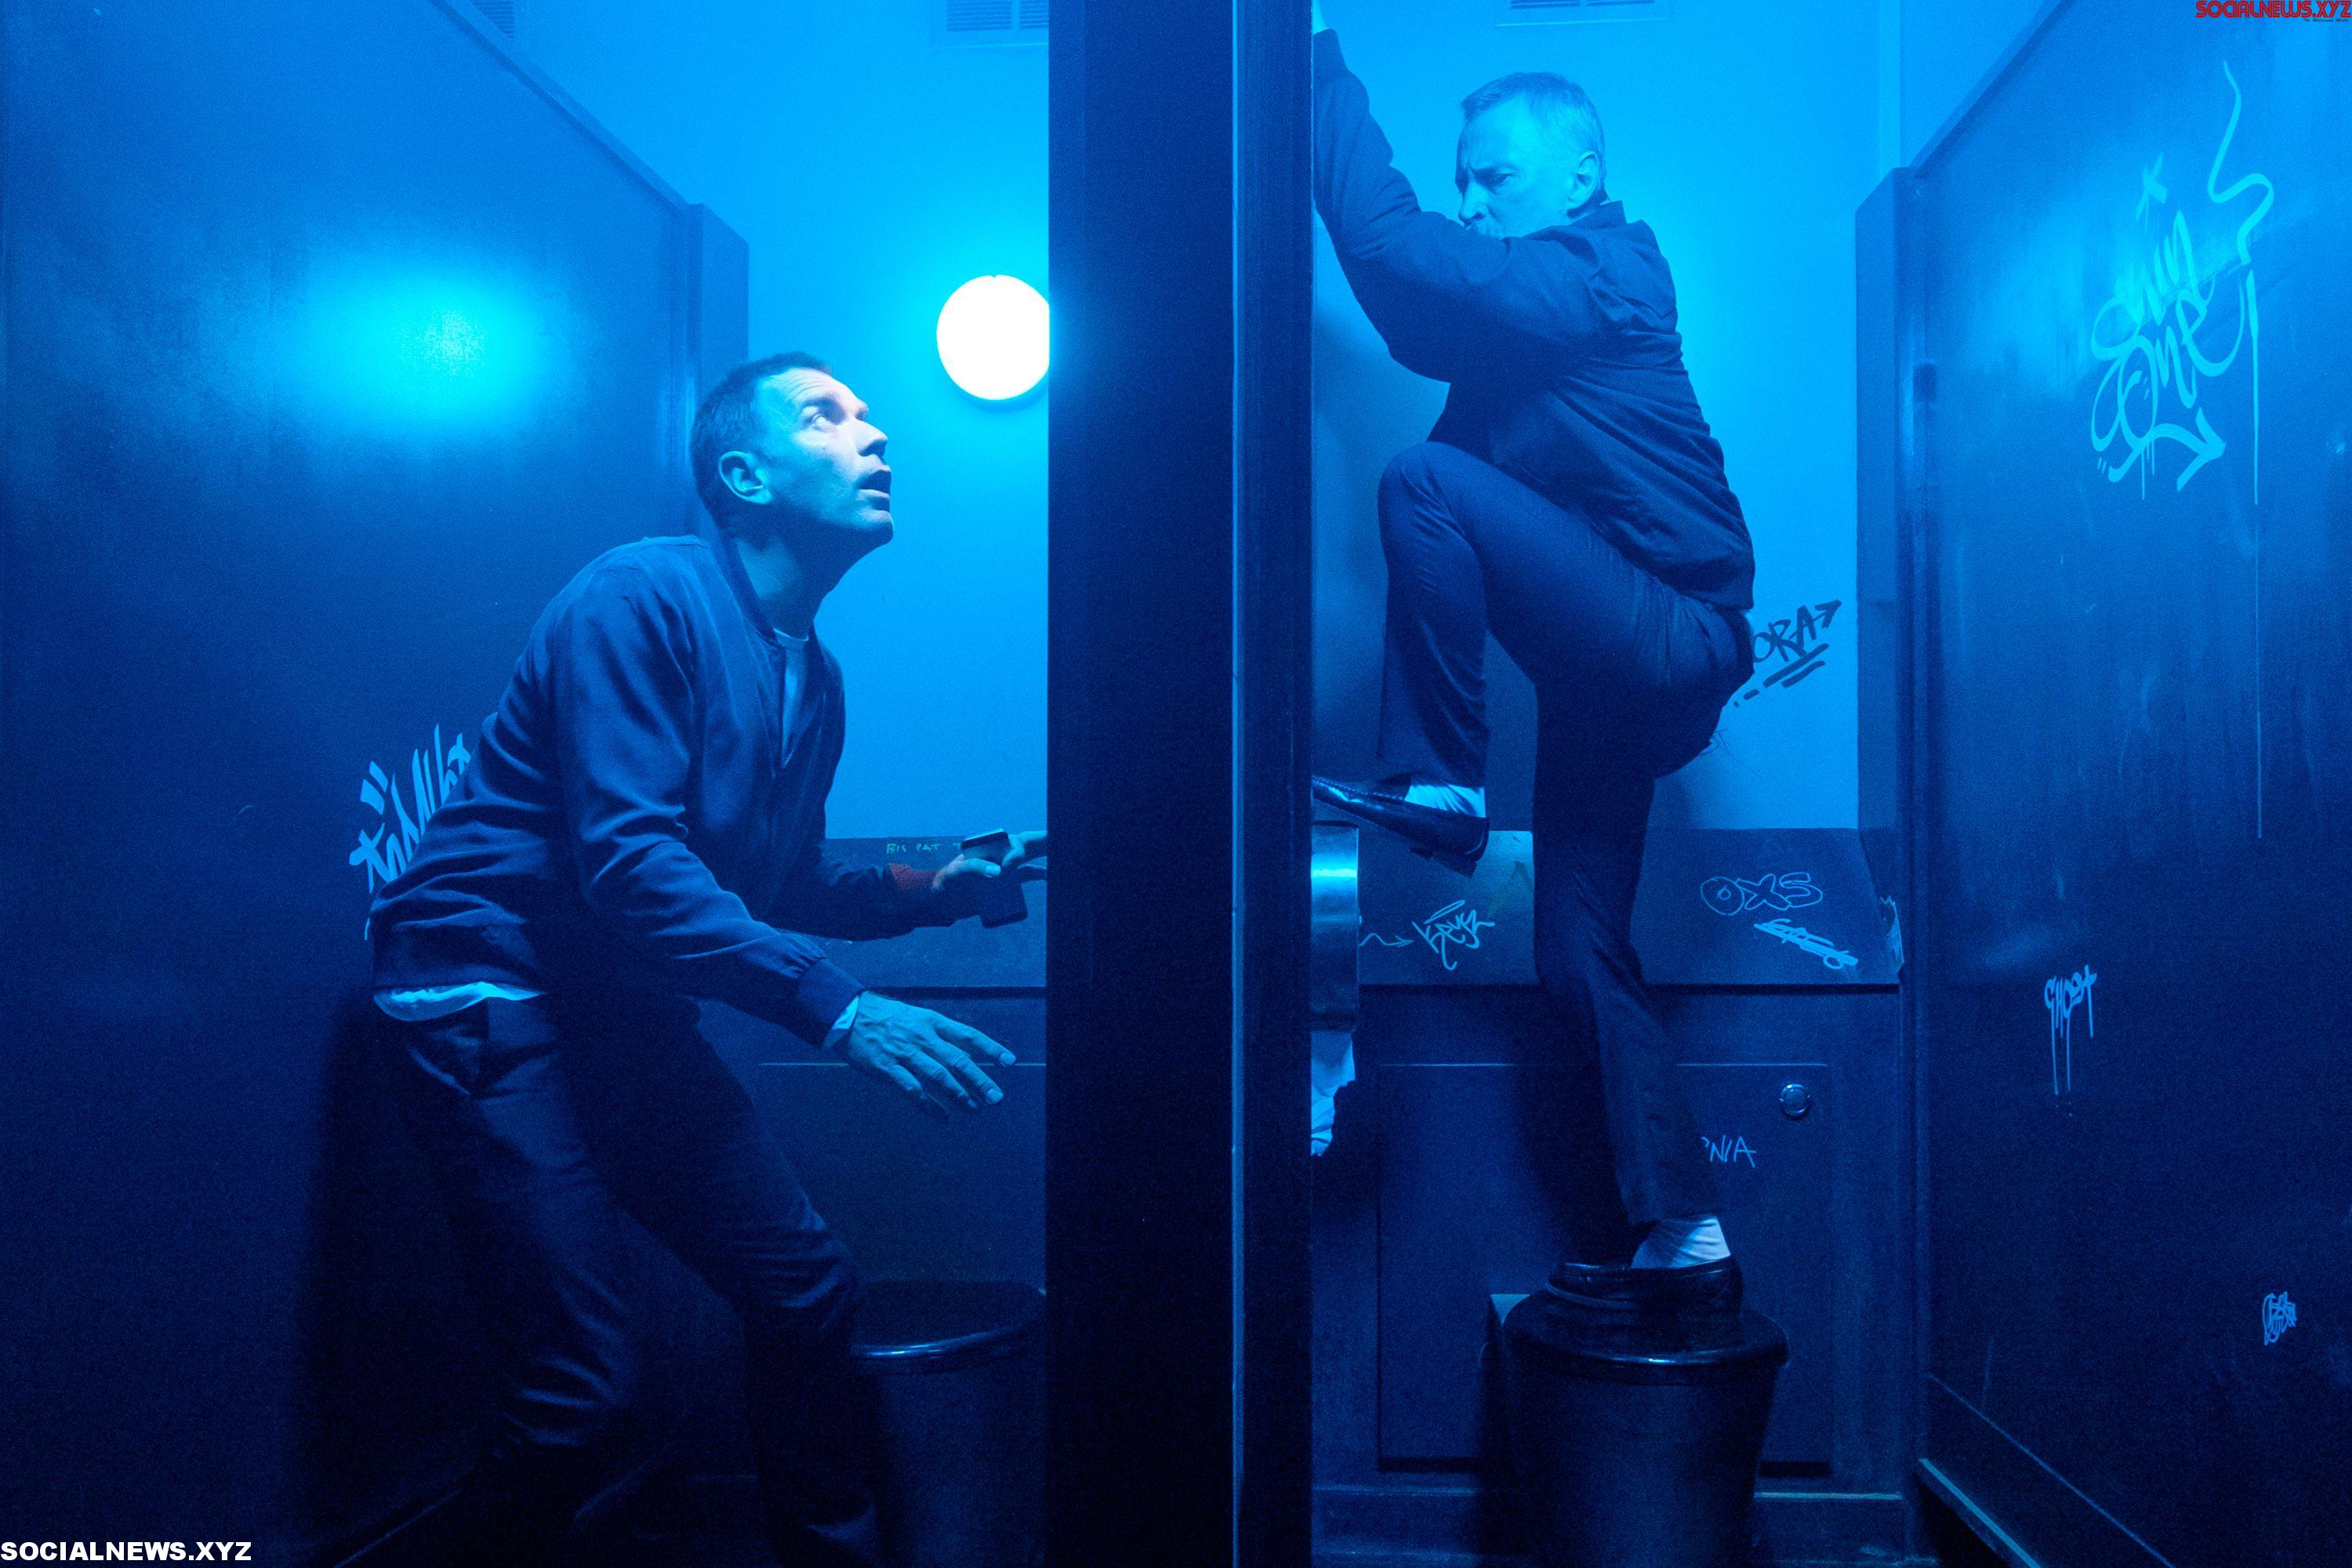 T2 Trainspotting Movie Stills